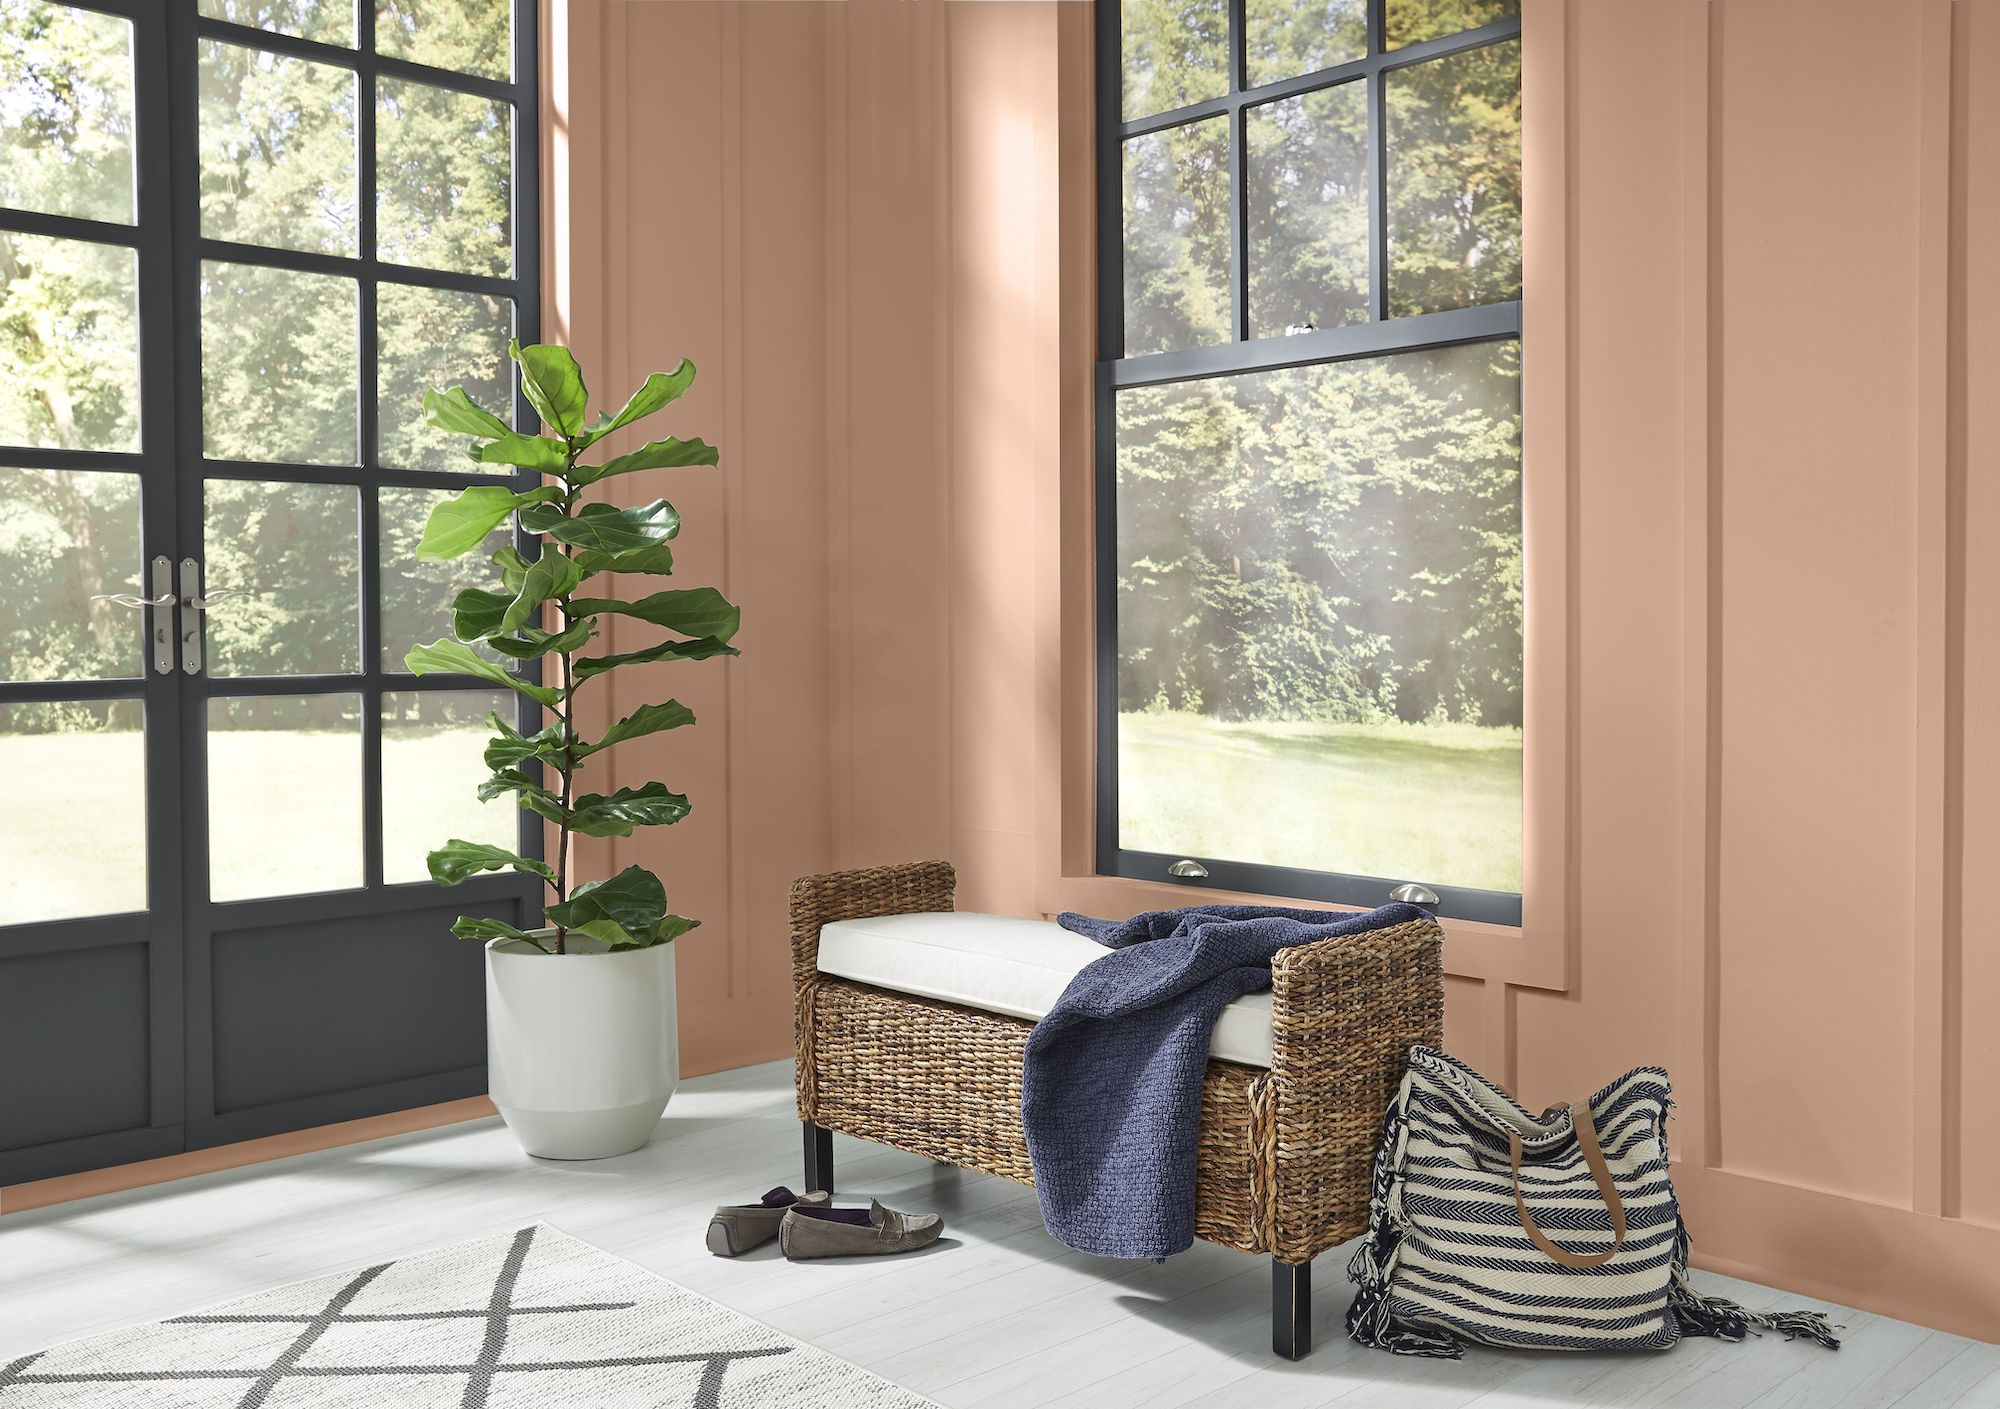 Behr Color of the Year 2021, Canyon Dusk